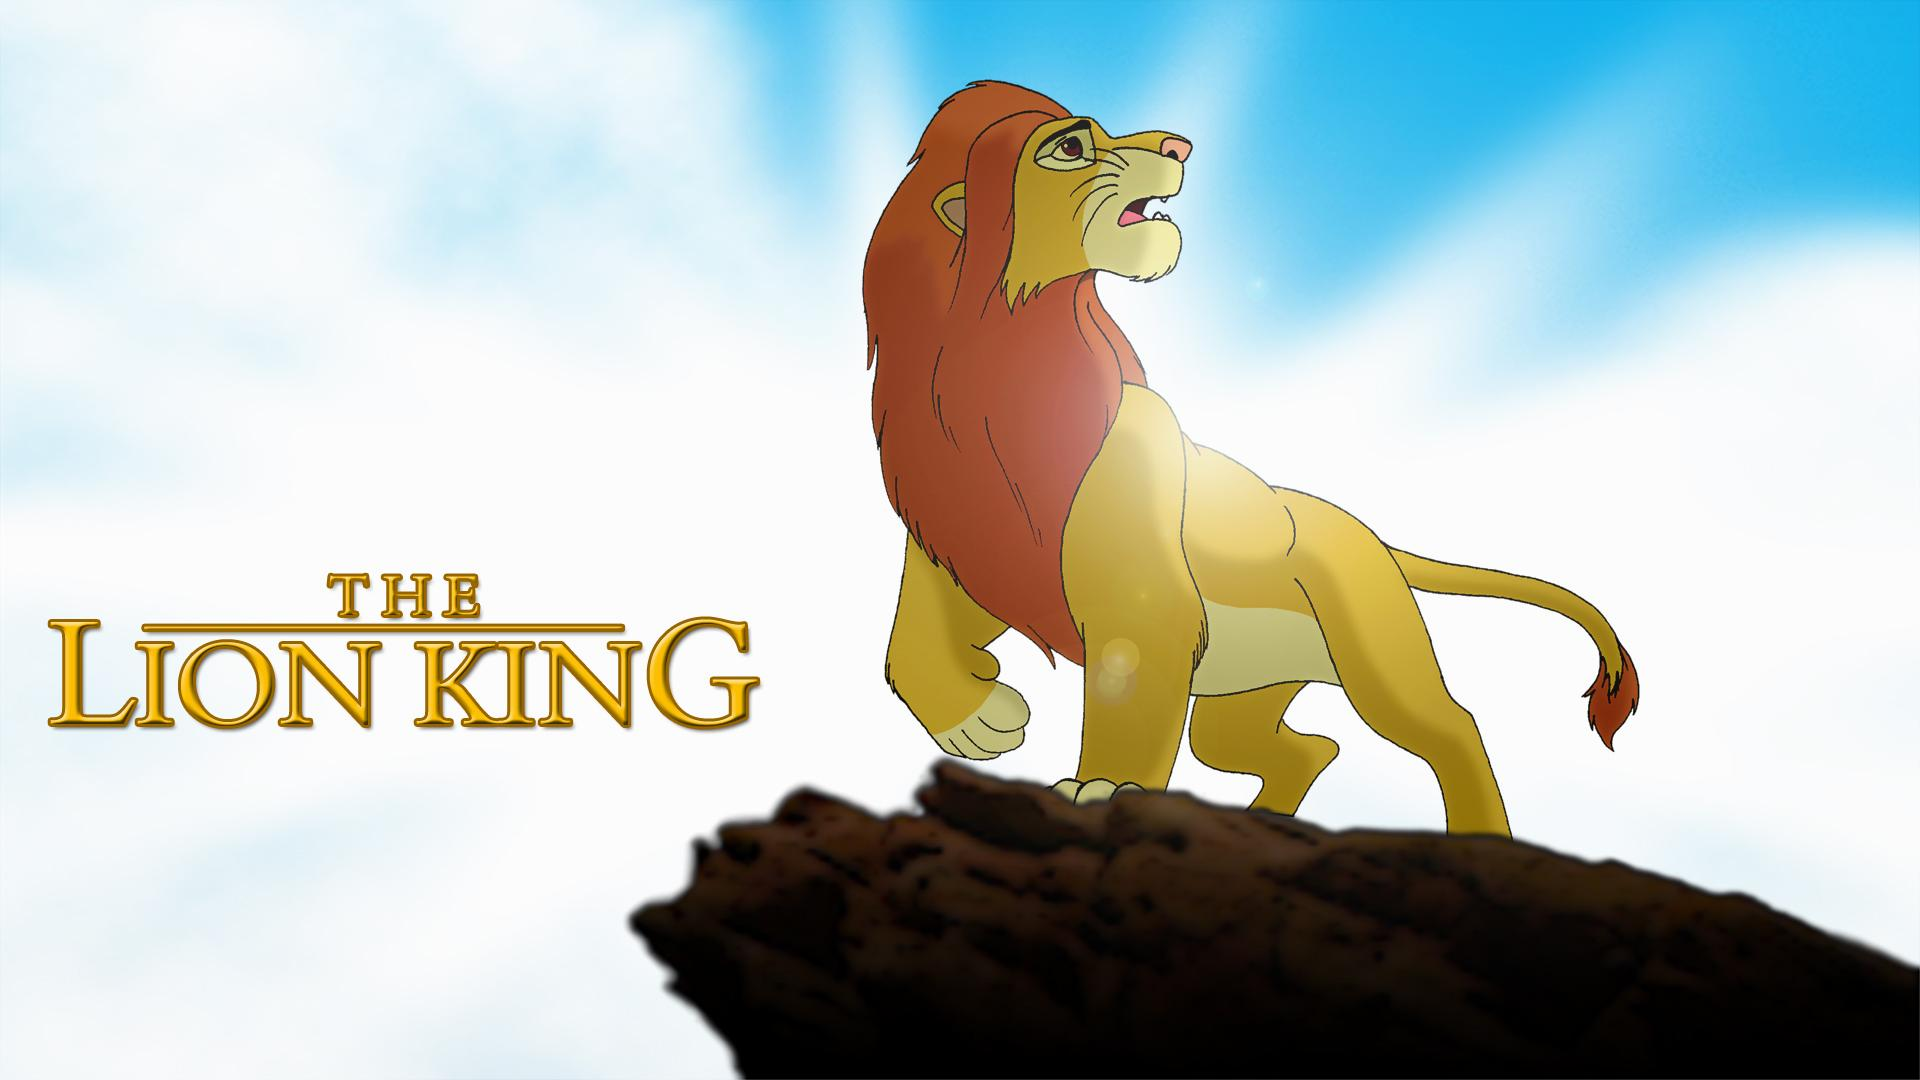 Hd Lion King Wallpaper: Download Lion King Wallpapers HD Free Download Gallery